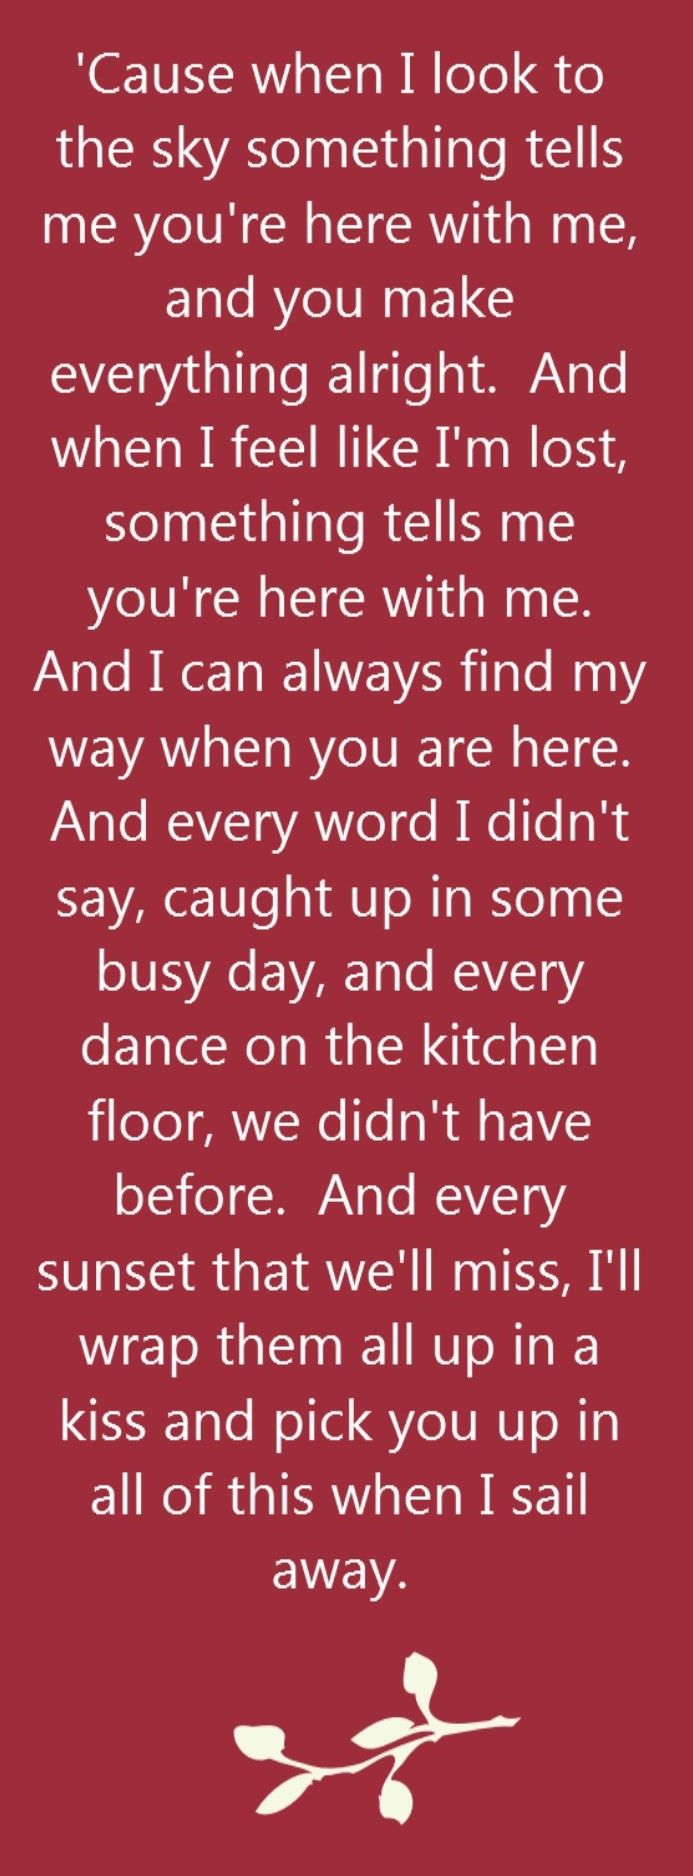 Rock and roll forever quotes quotesgram - Train When I Look To The Sky Song Lyrics Song Quotes Songs